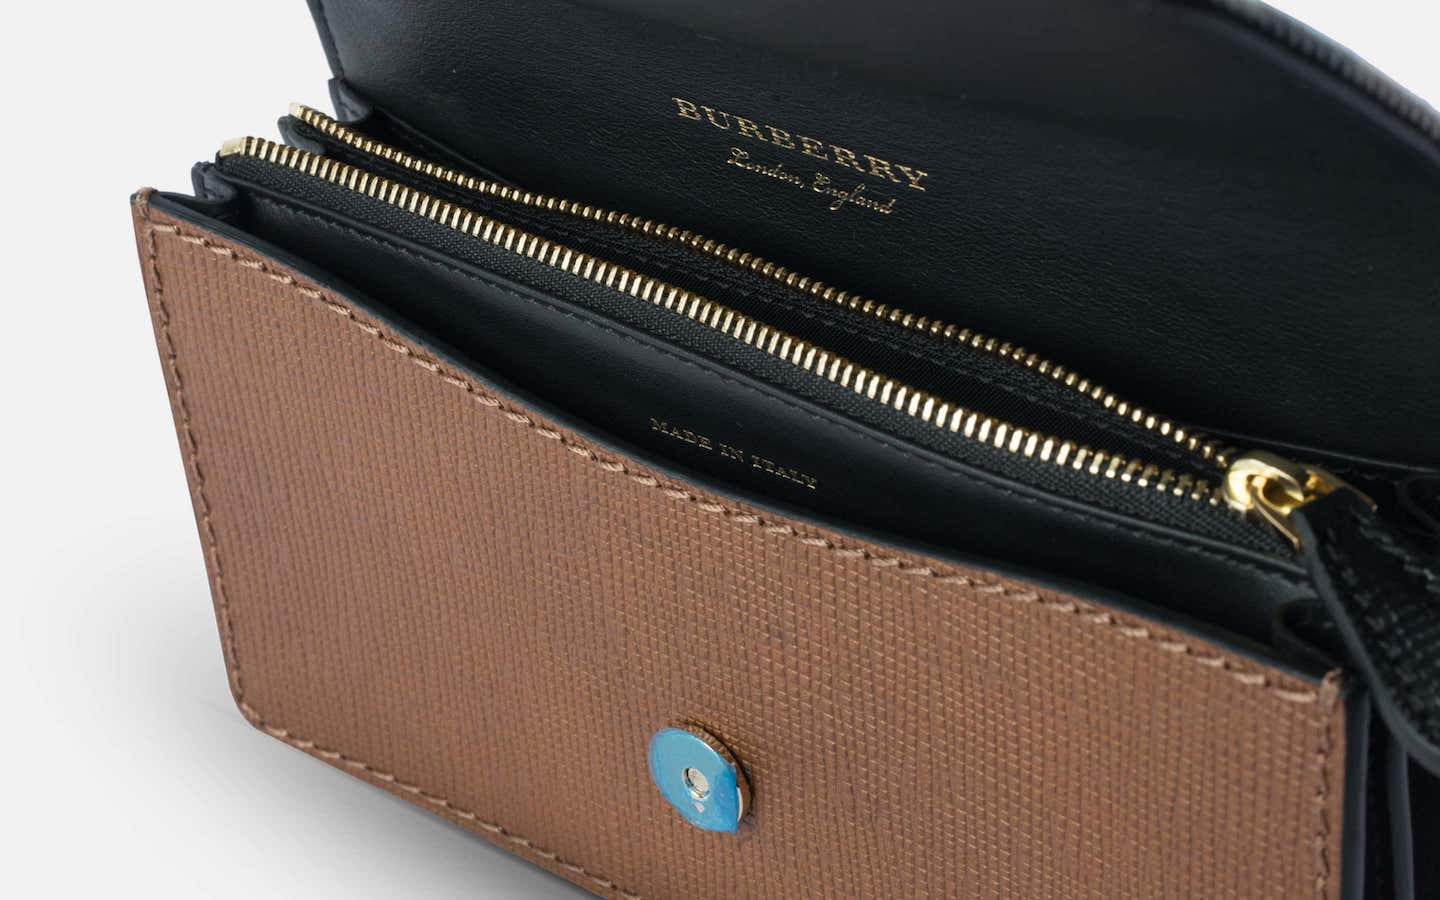 Burberry_House_Check_Buckle_Bag_Brown_Clutch_Perspective-min